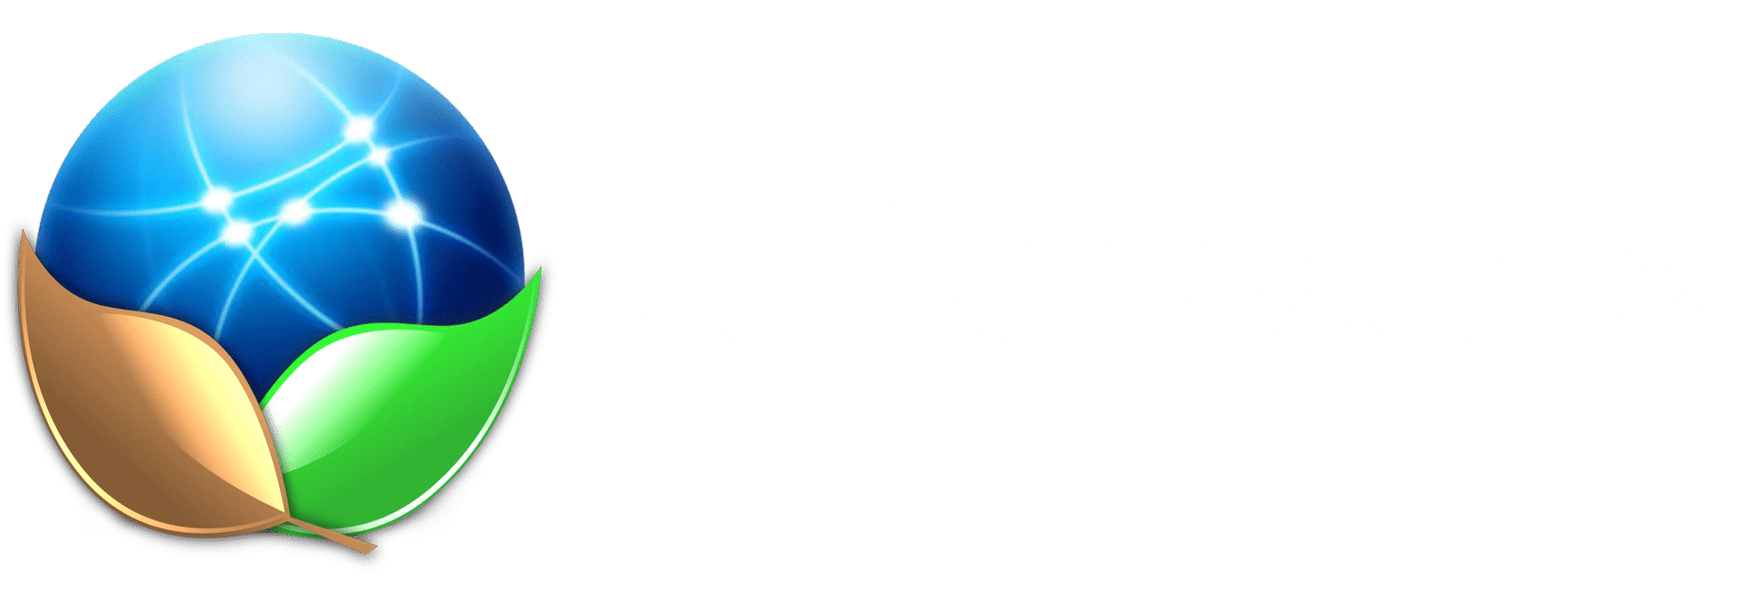 North Cyprus |   Tourism Agency Cruises Product